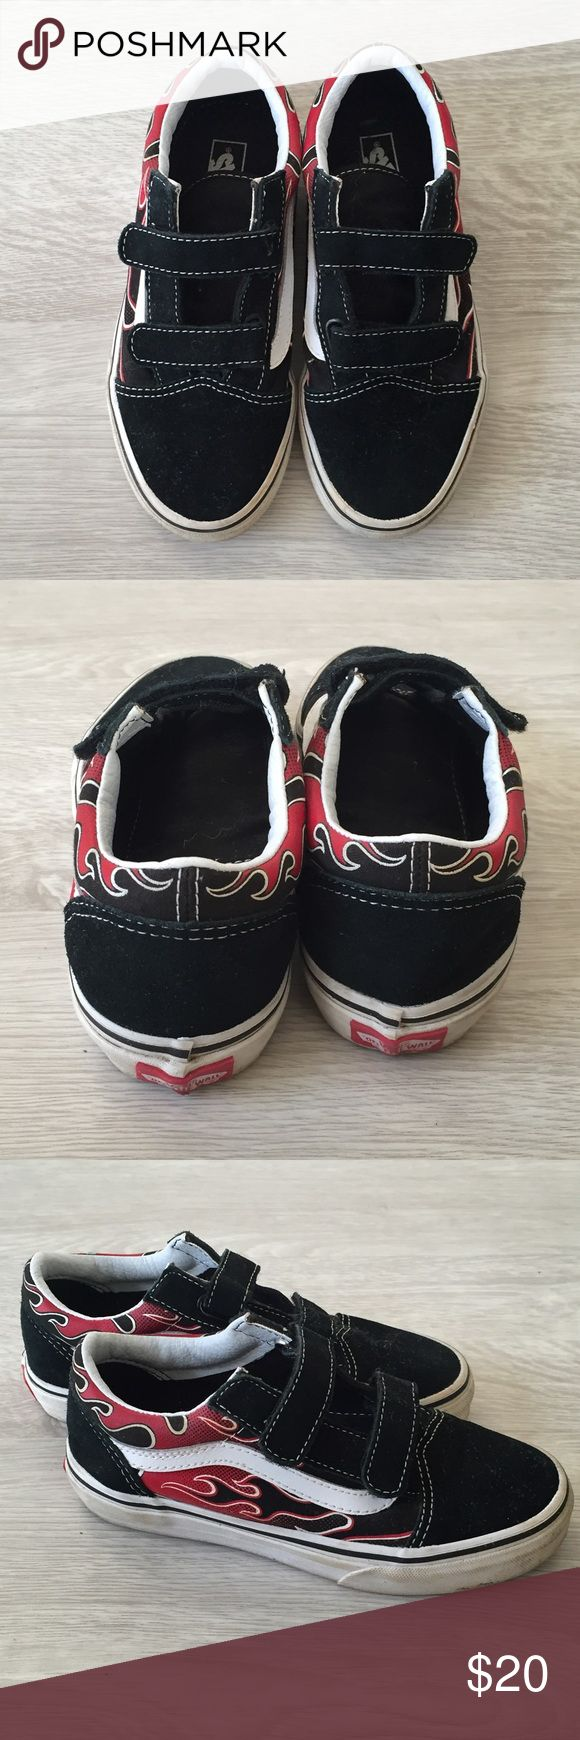 Boys Vans Shoes Boys Vans shoes with flame detail. Glow in the dark. Only worn a couple of times. Vans Shoes Sneakers